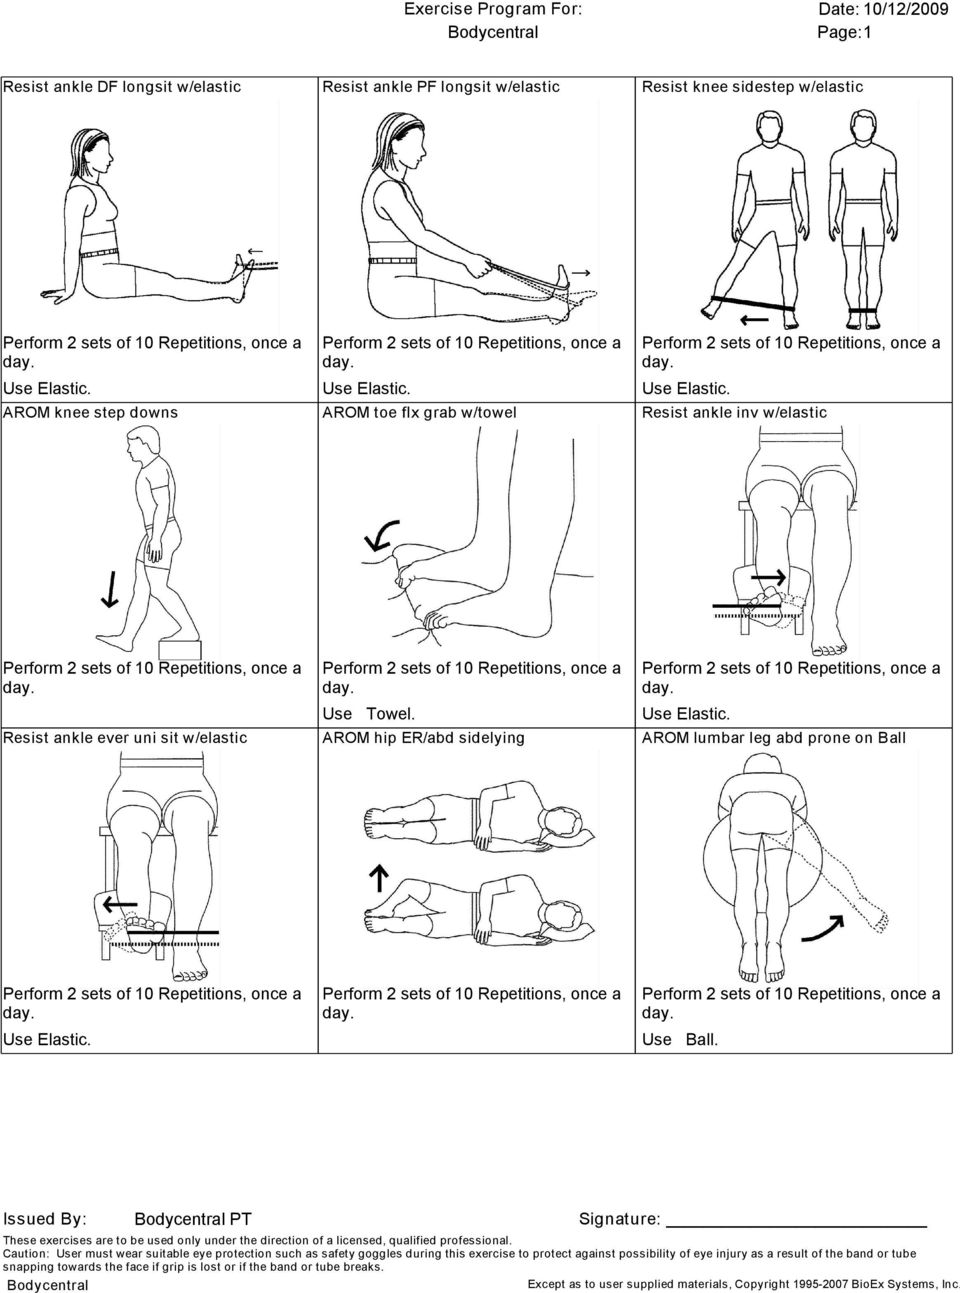 Issued By: Bodycentral PT Signature: These exercises are to be used only under the direction of a licensed, qualified professional.